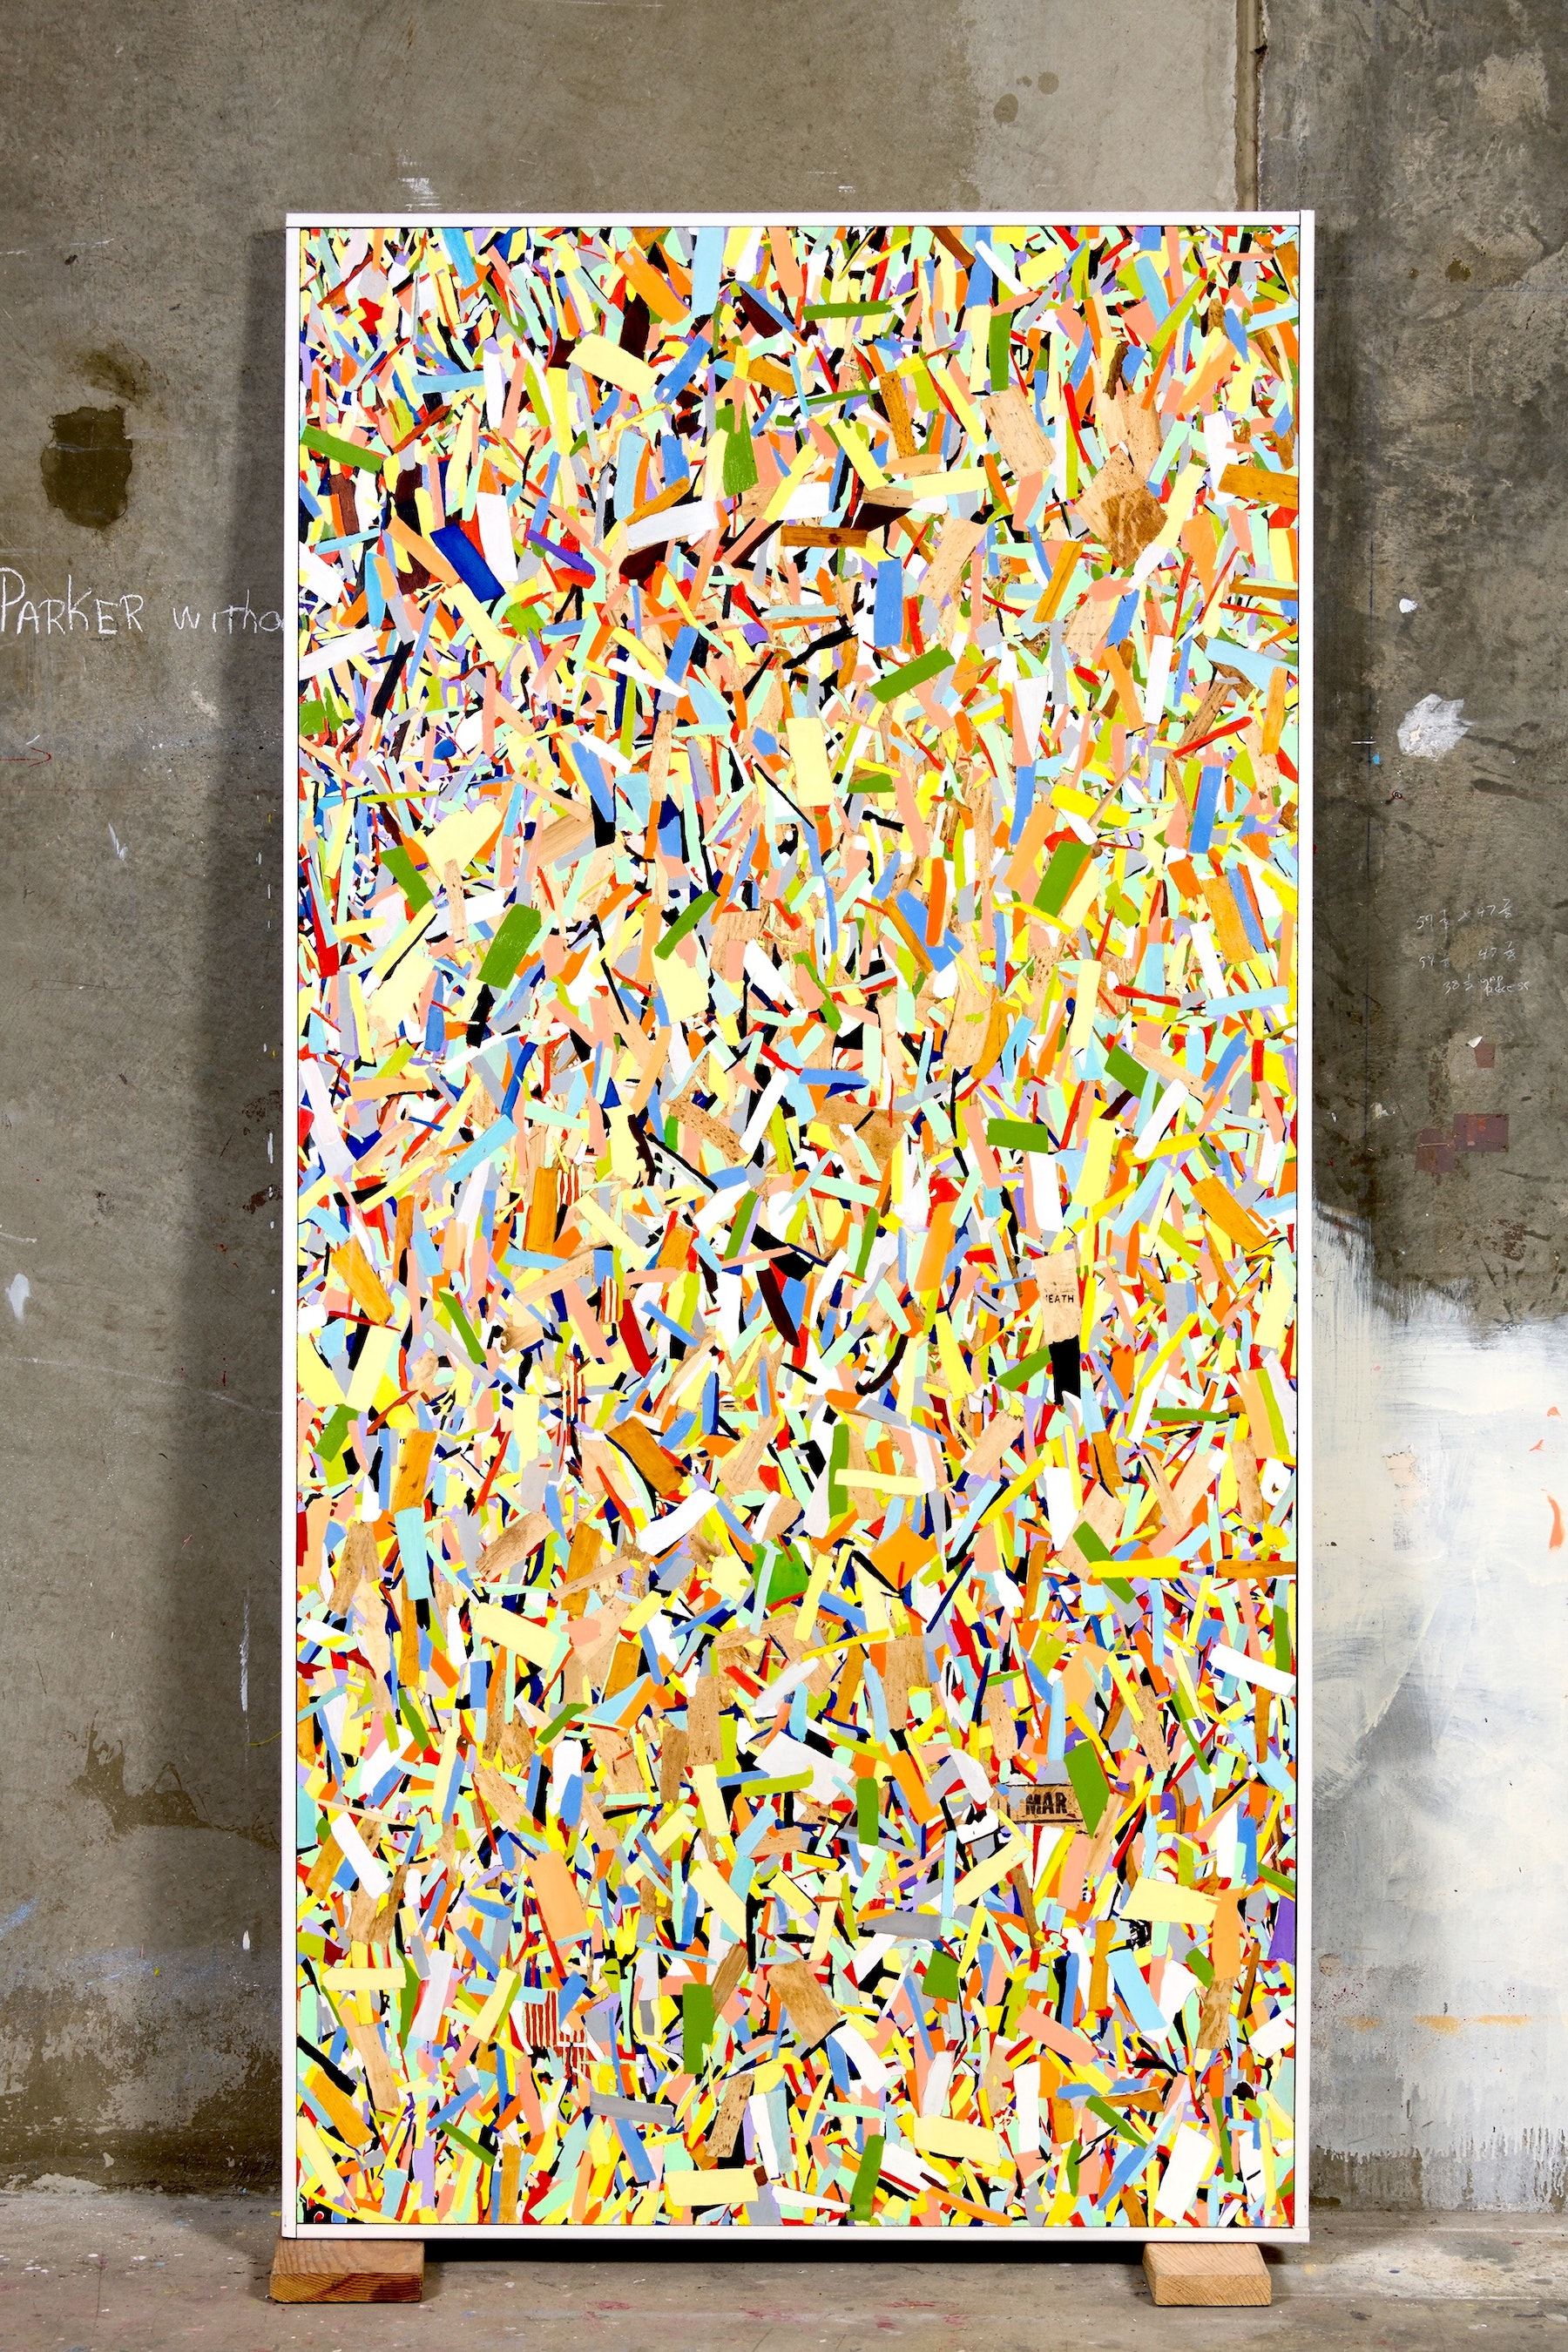 """Kim Dingle """"HOME DEPOT COLORING BOOK (flowers)"""", 2017 Oil on OSB with artist's frame 97.75 x 49.5 x 2.5"""" [HxWxD] (248.29 x 125.73 x 6.35 cm) Inventory #DIN188 Courtesy of the artist and Vielmetter Los Angeles Photo credit: Robert Wedemeyer"""